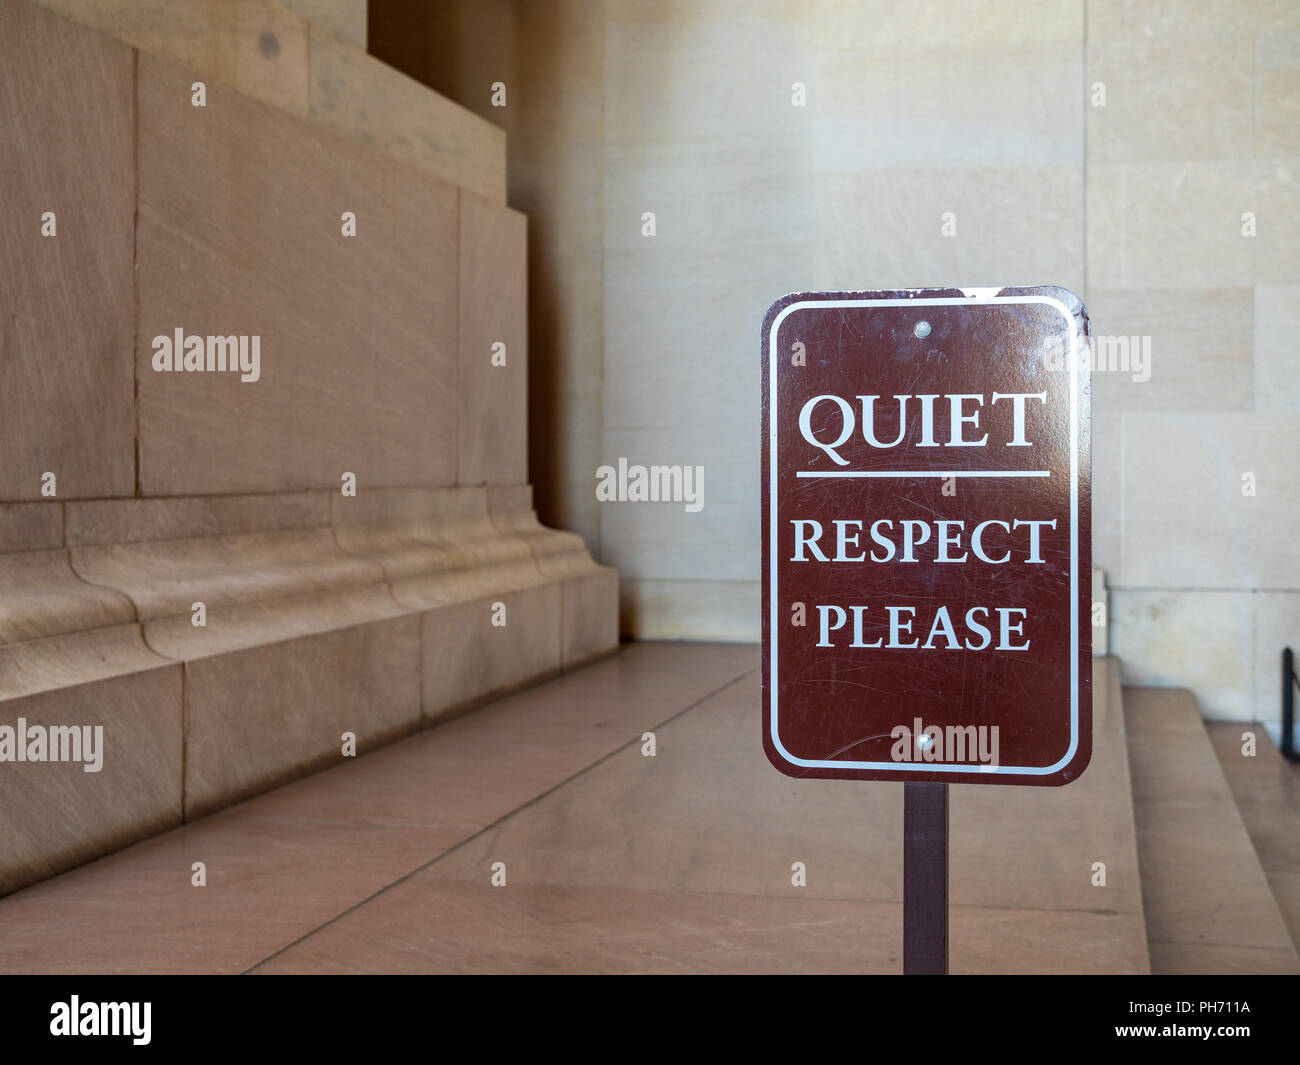 Quiet, respect please brown sign in front of a decorative display - Stock Image